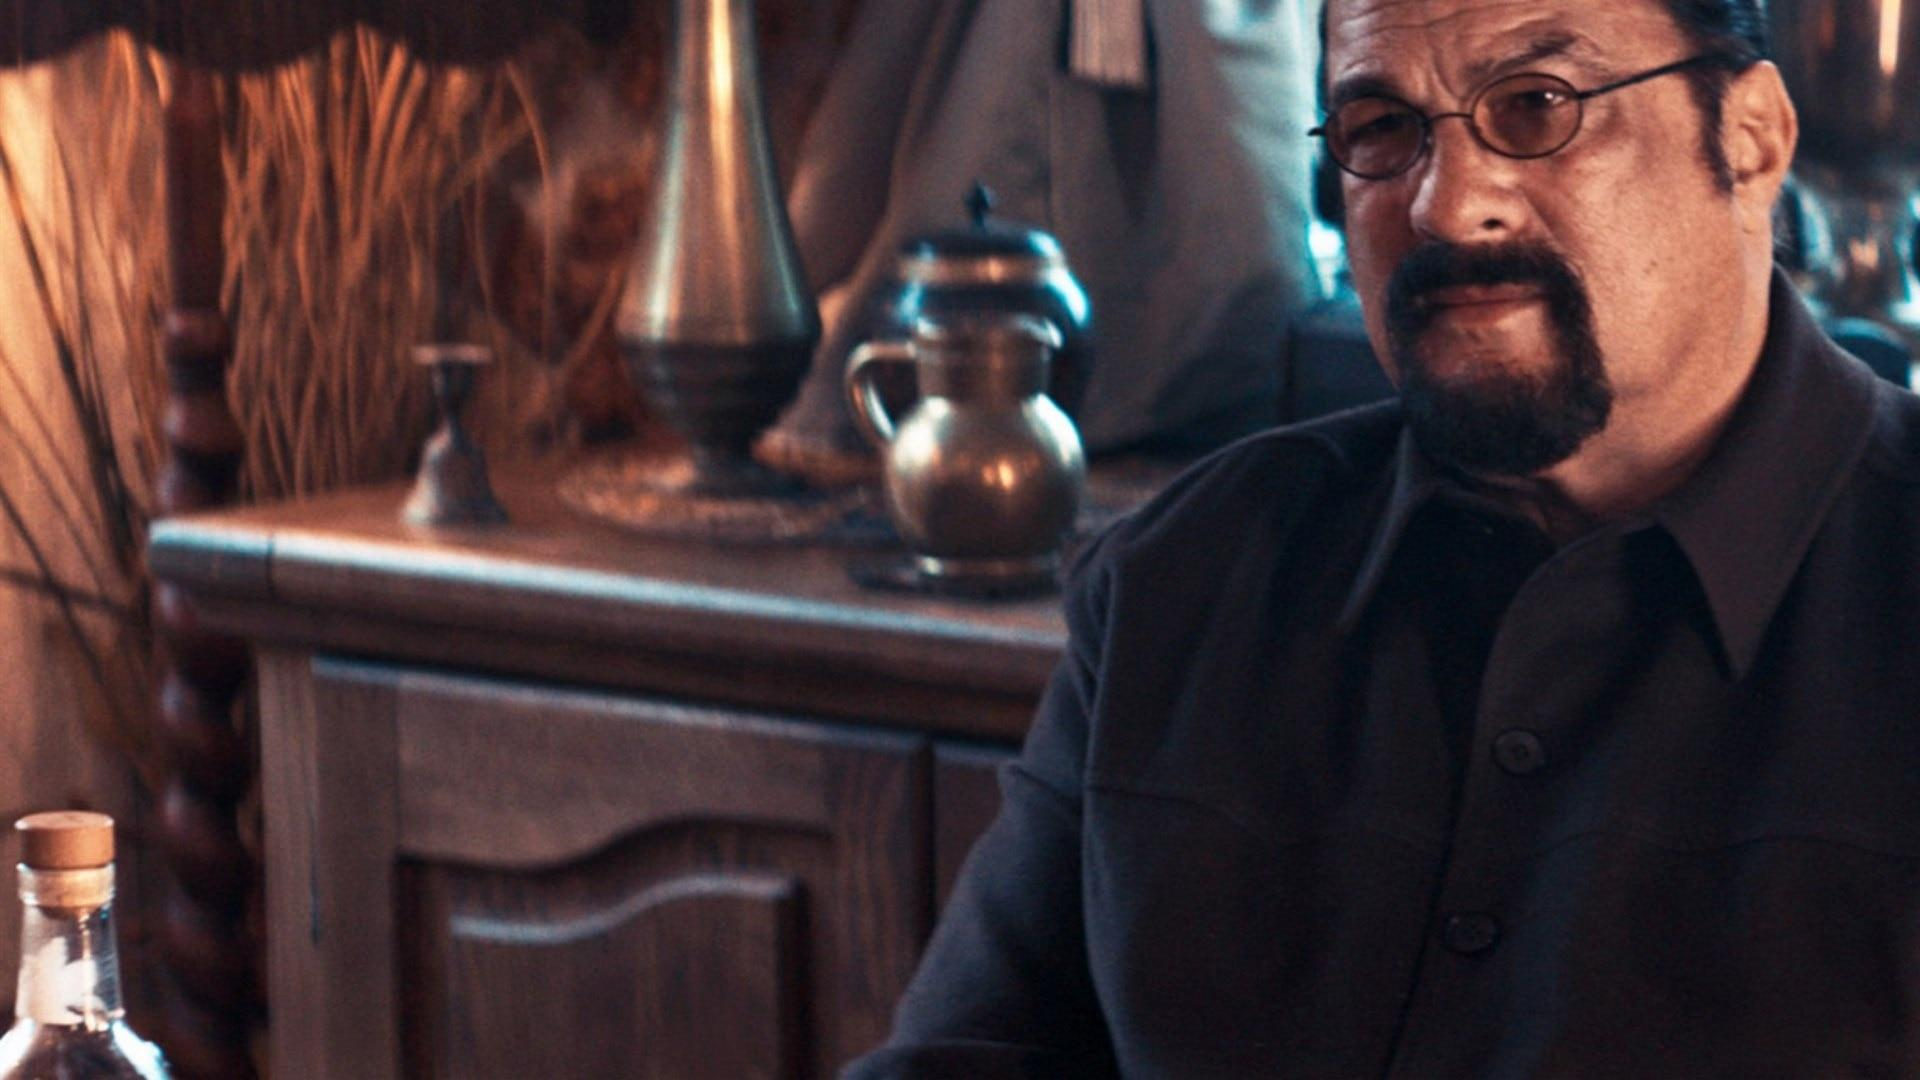 Cielo Beyond the Law - L'infiltrato -  - 1^TV